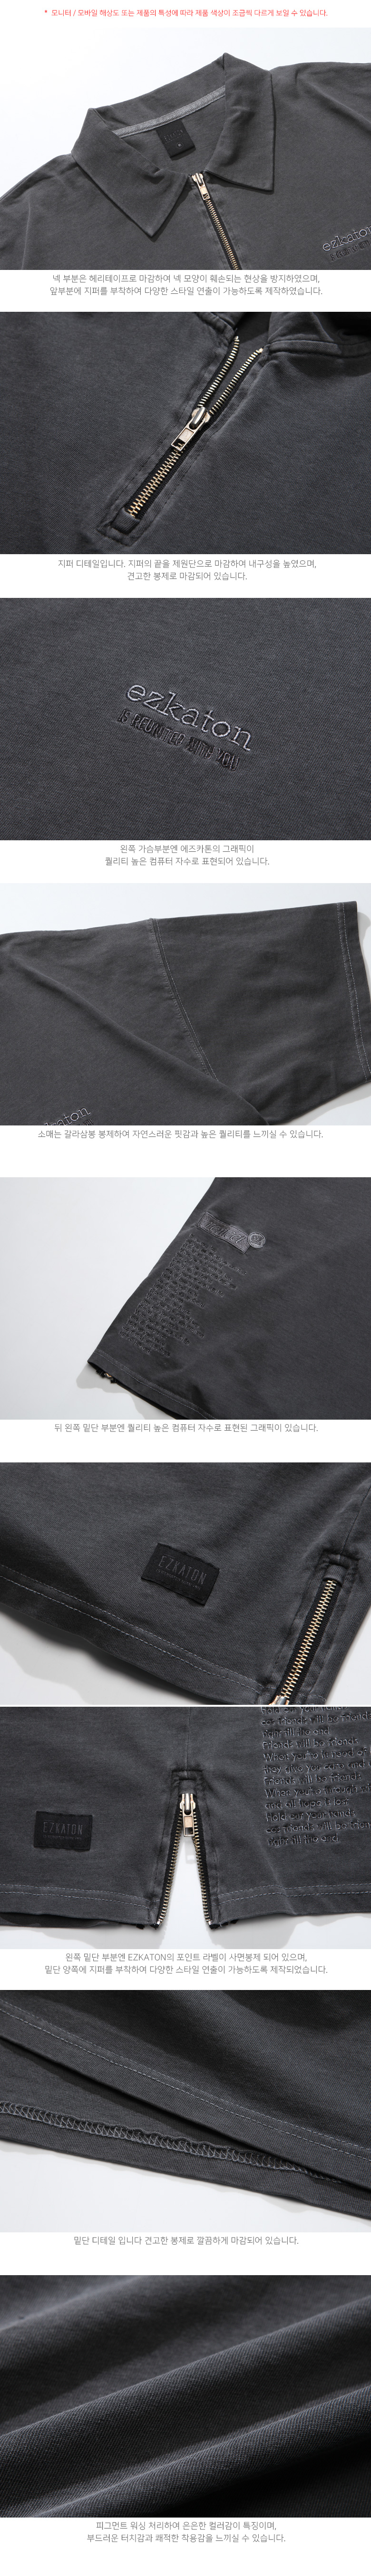 20190426_ez_washingslider_detail_deepgray_ym_02.jpg